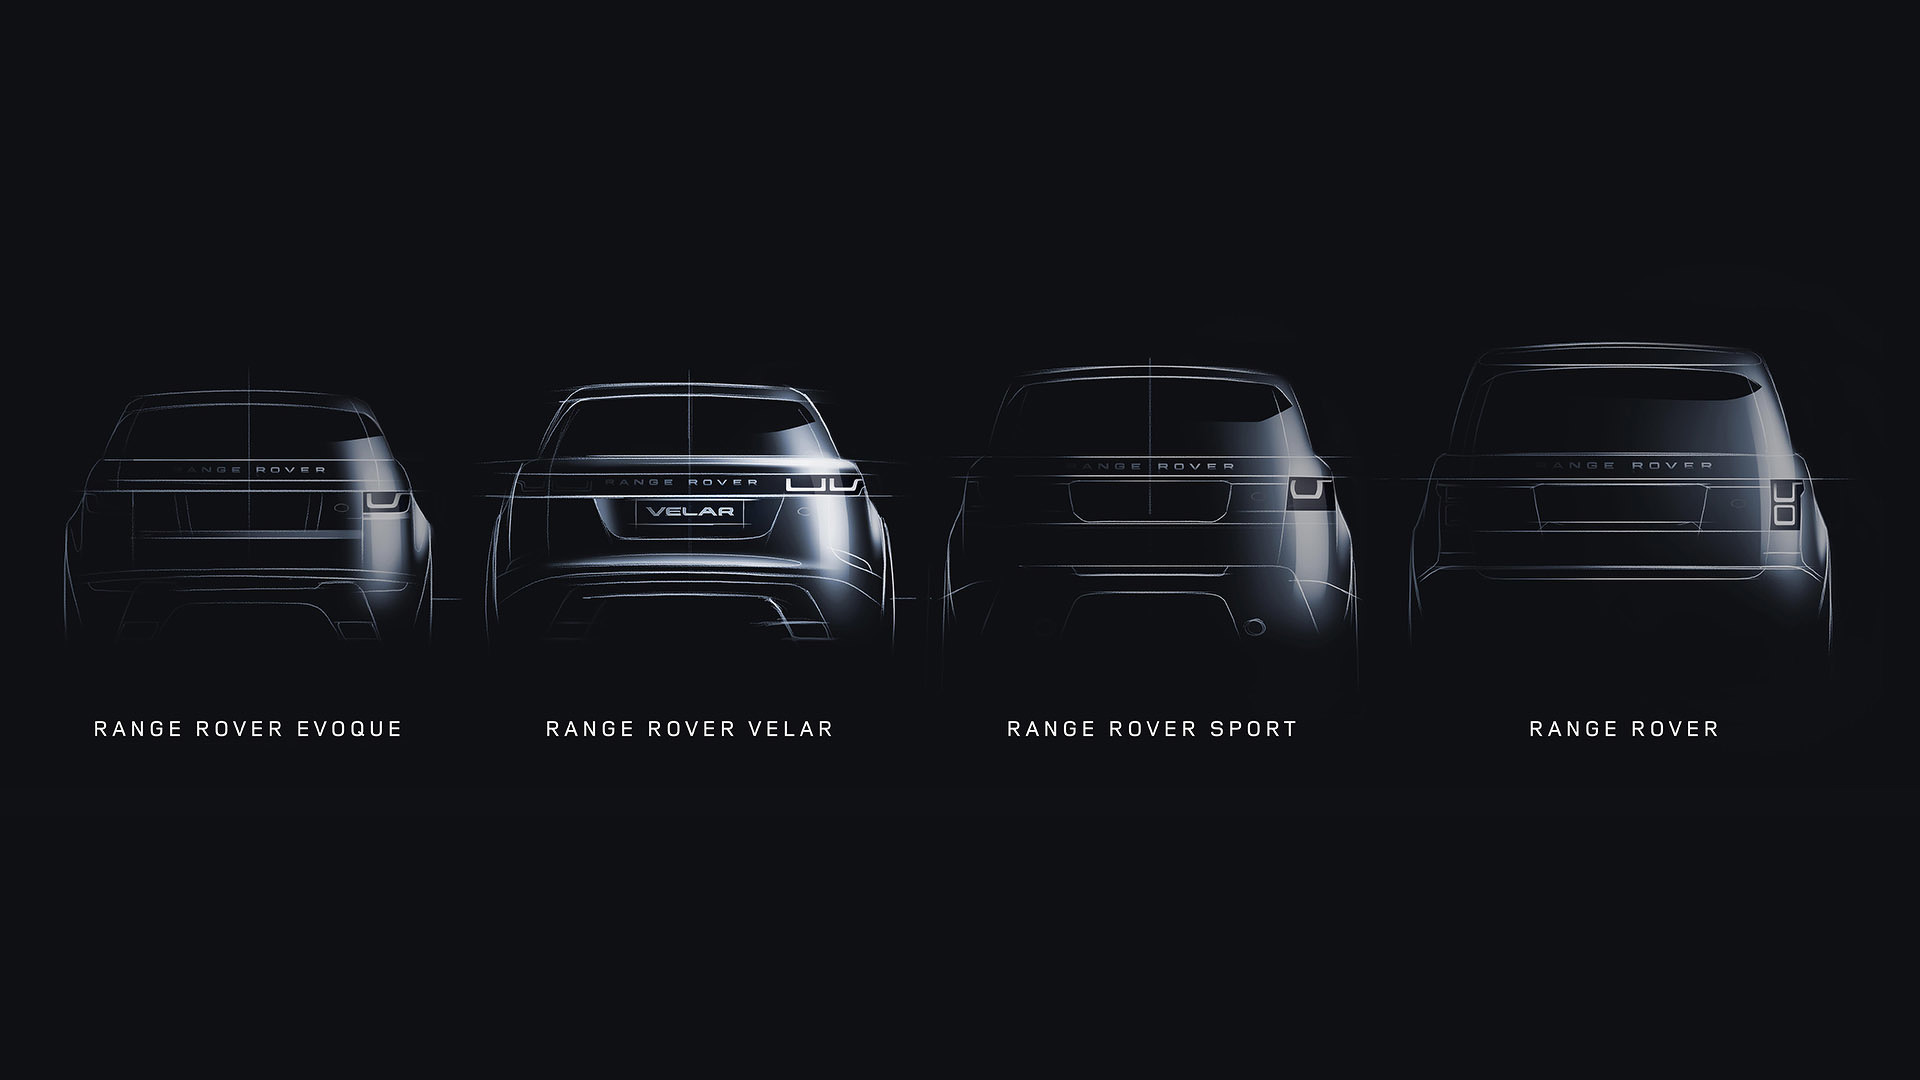 Range Rover Velar to be unveiled on 1 March 2017 - Autodevot